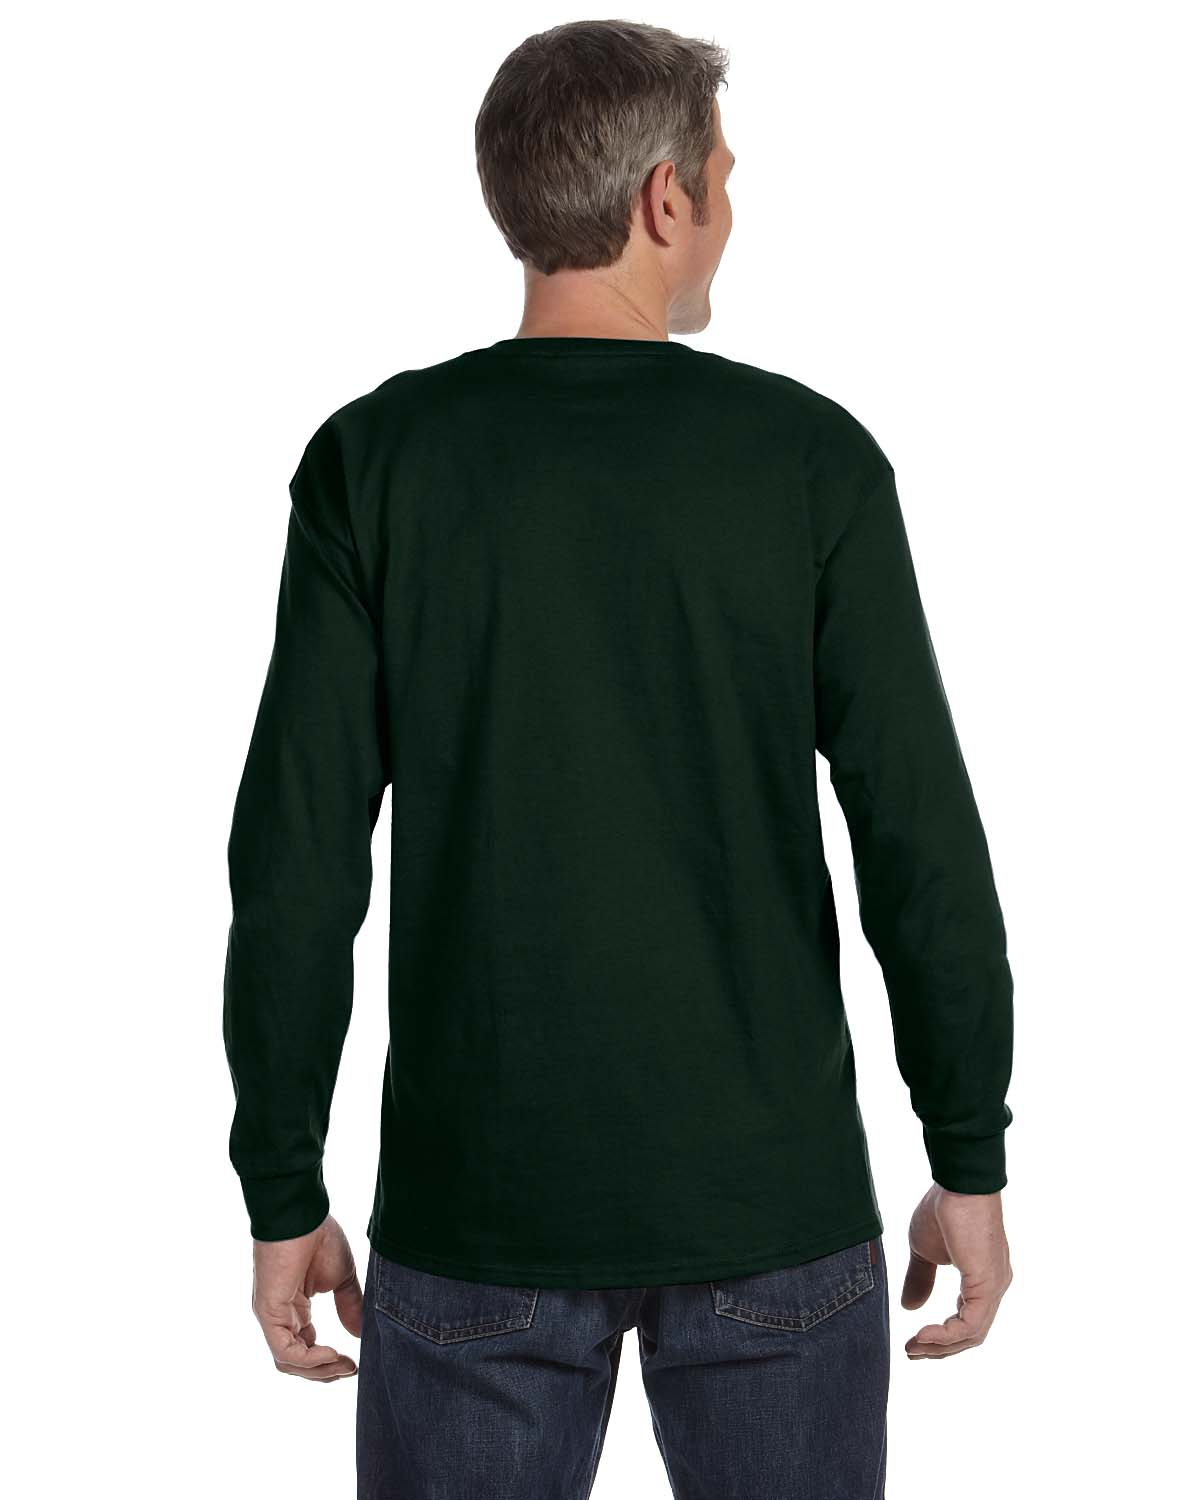 Gildan-Mens-T-Shirt-Long-Sleeve-Heavy-Cotton-5-3-oz-S-XL-R-G540-5400 thumbnail 17